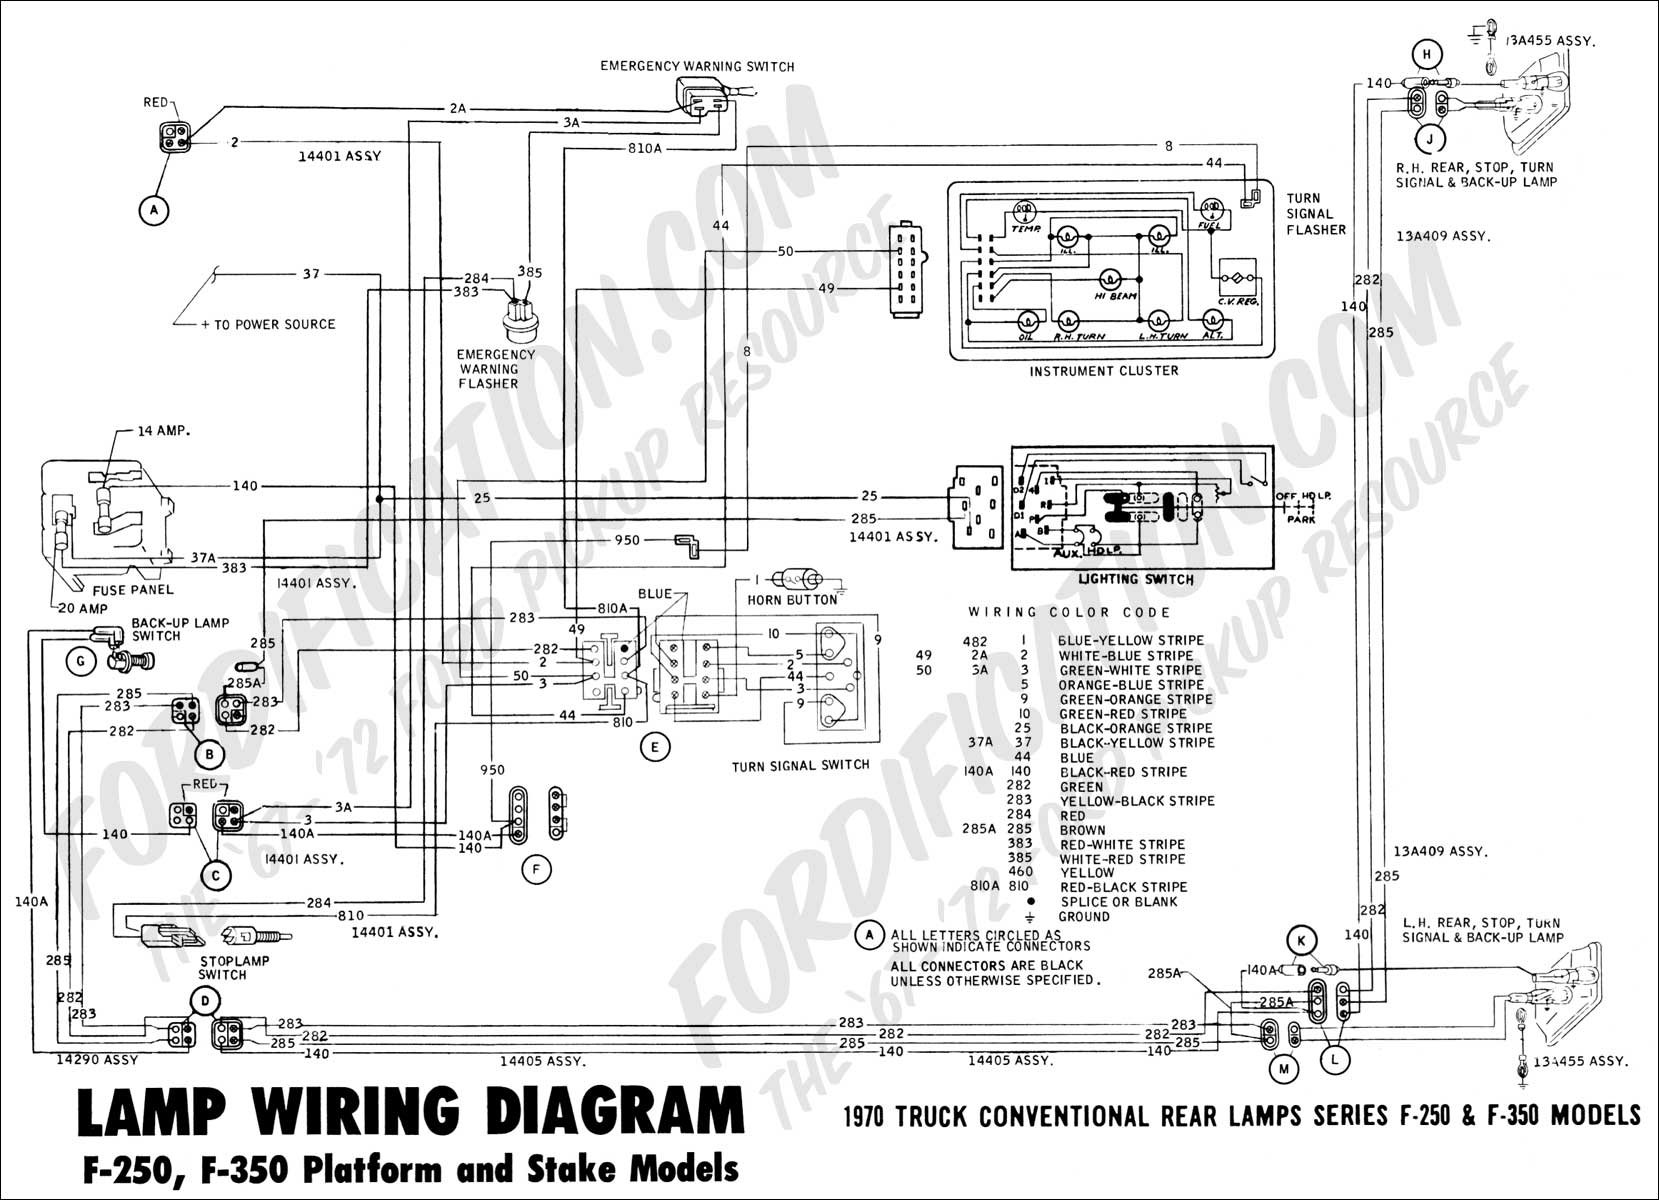 electrical diagram 1995 ford bronco 1995 ford bronco interior diagram ford truck technical drawings and schematics section h #6